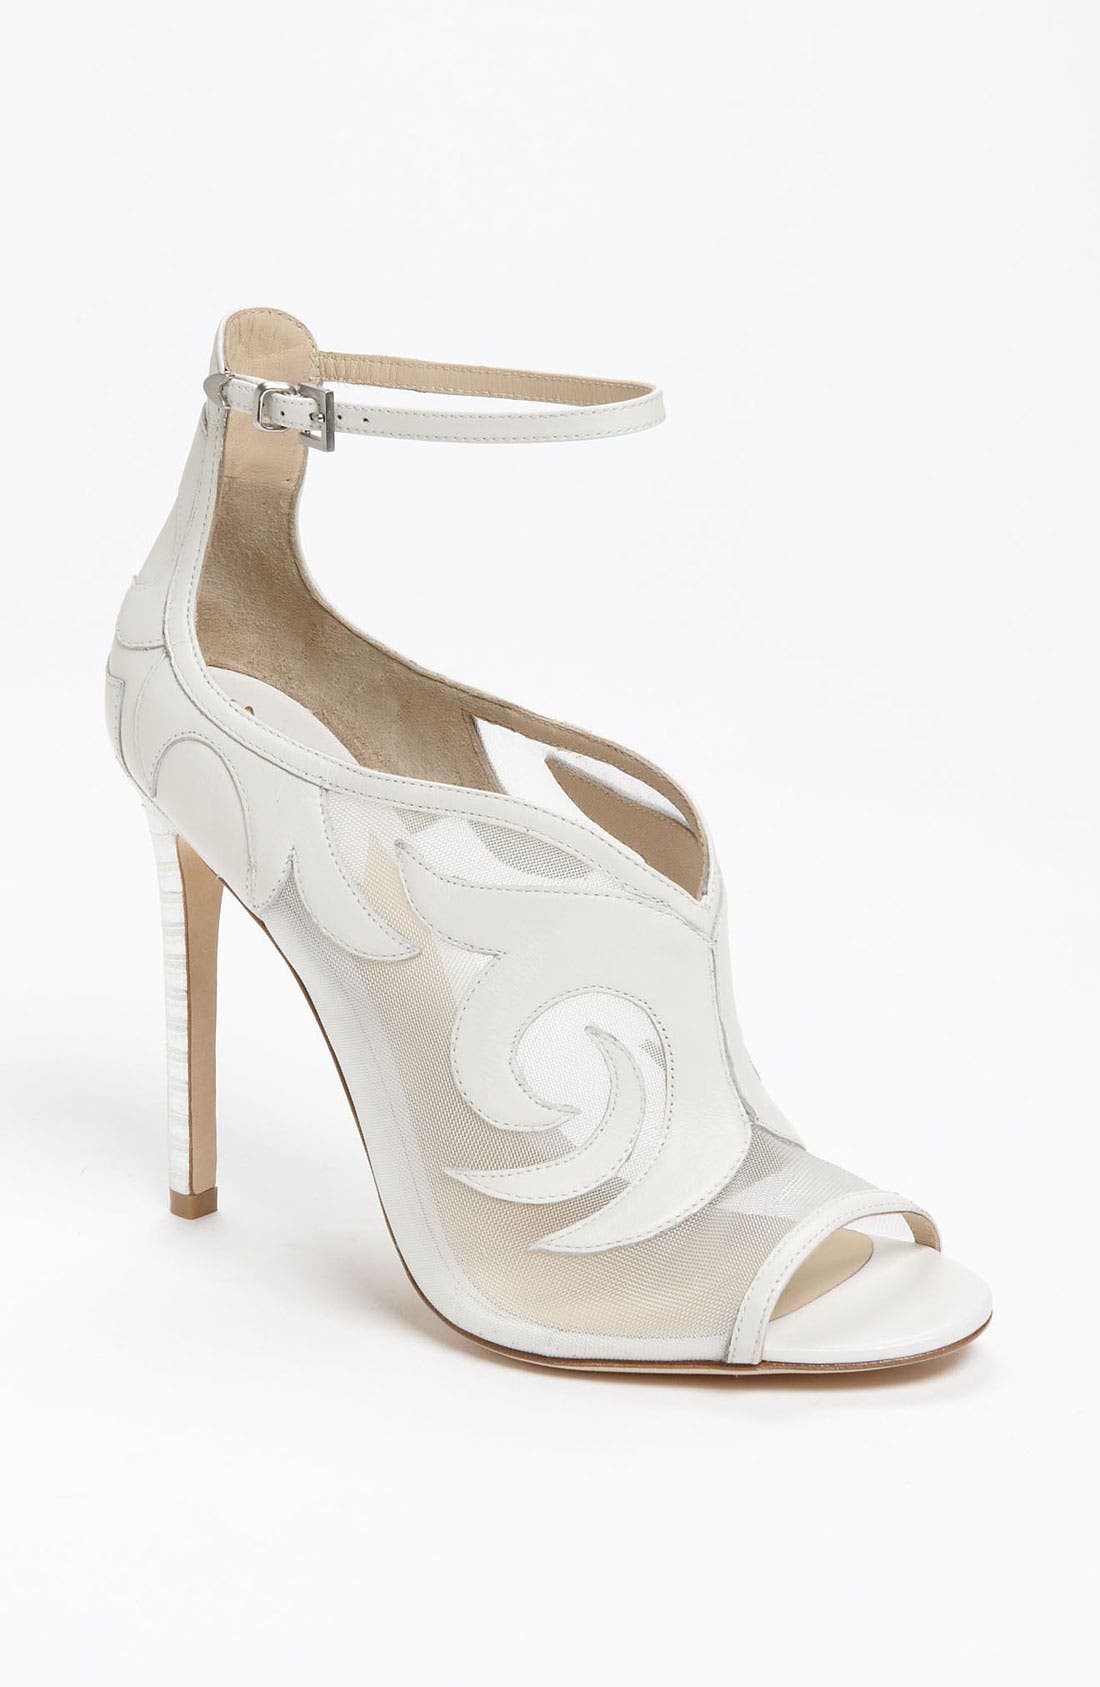 Alternate Image 1 Selected - B Brian Atwood 'Linscott' Sandal